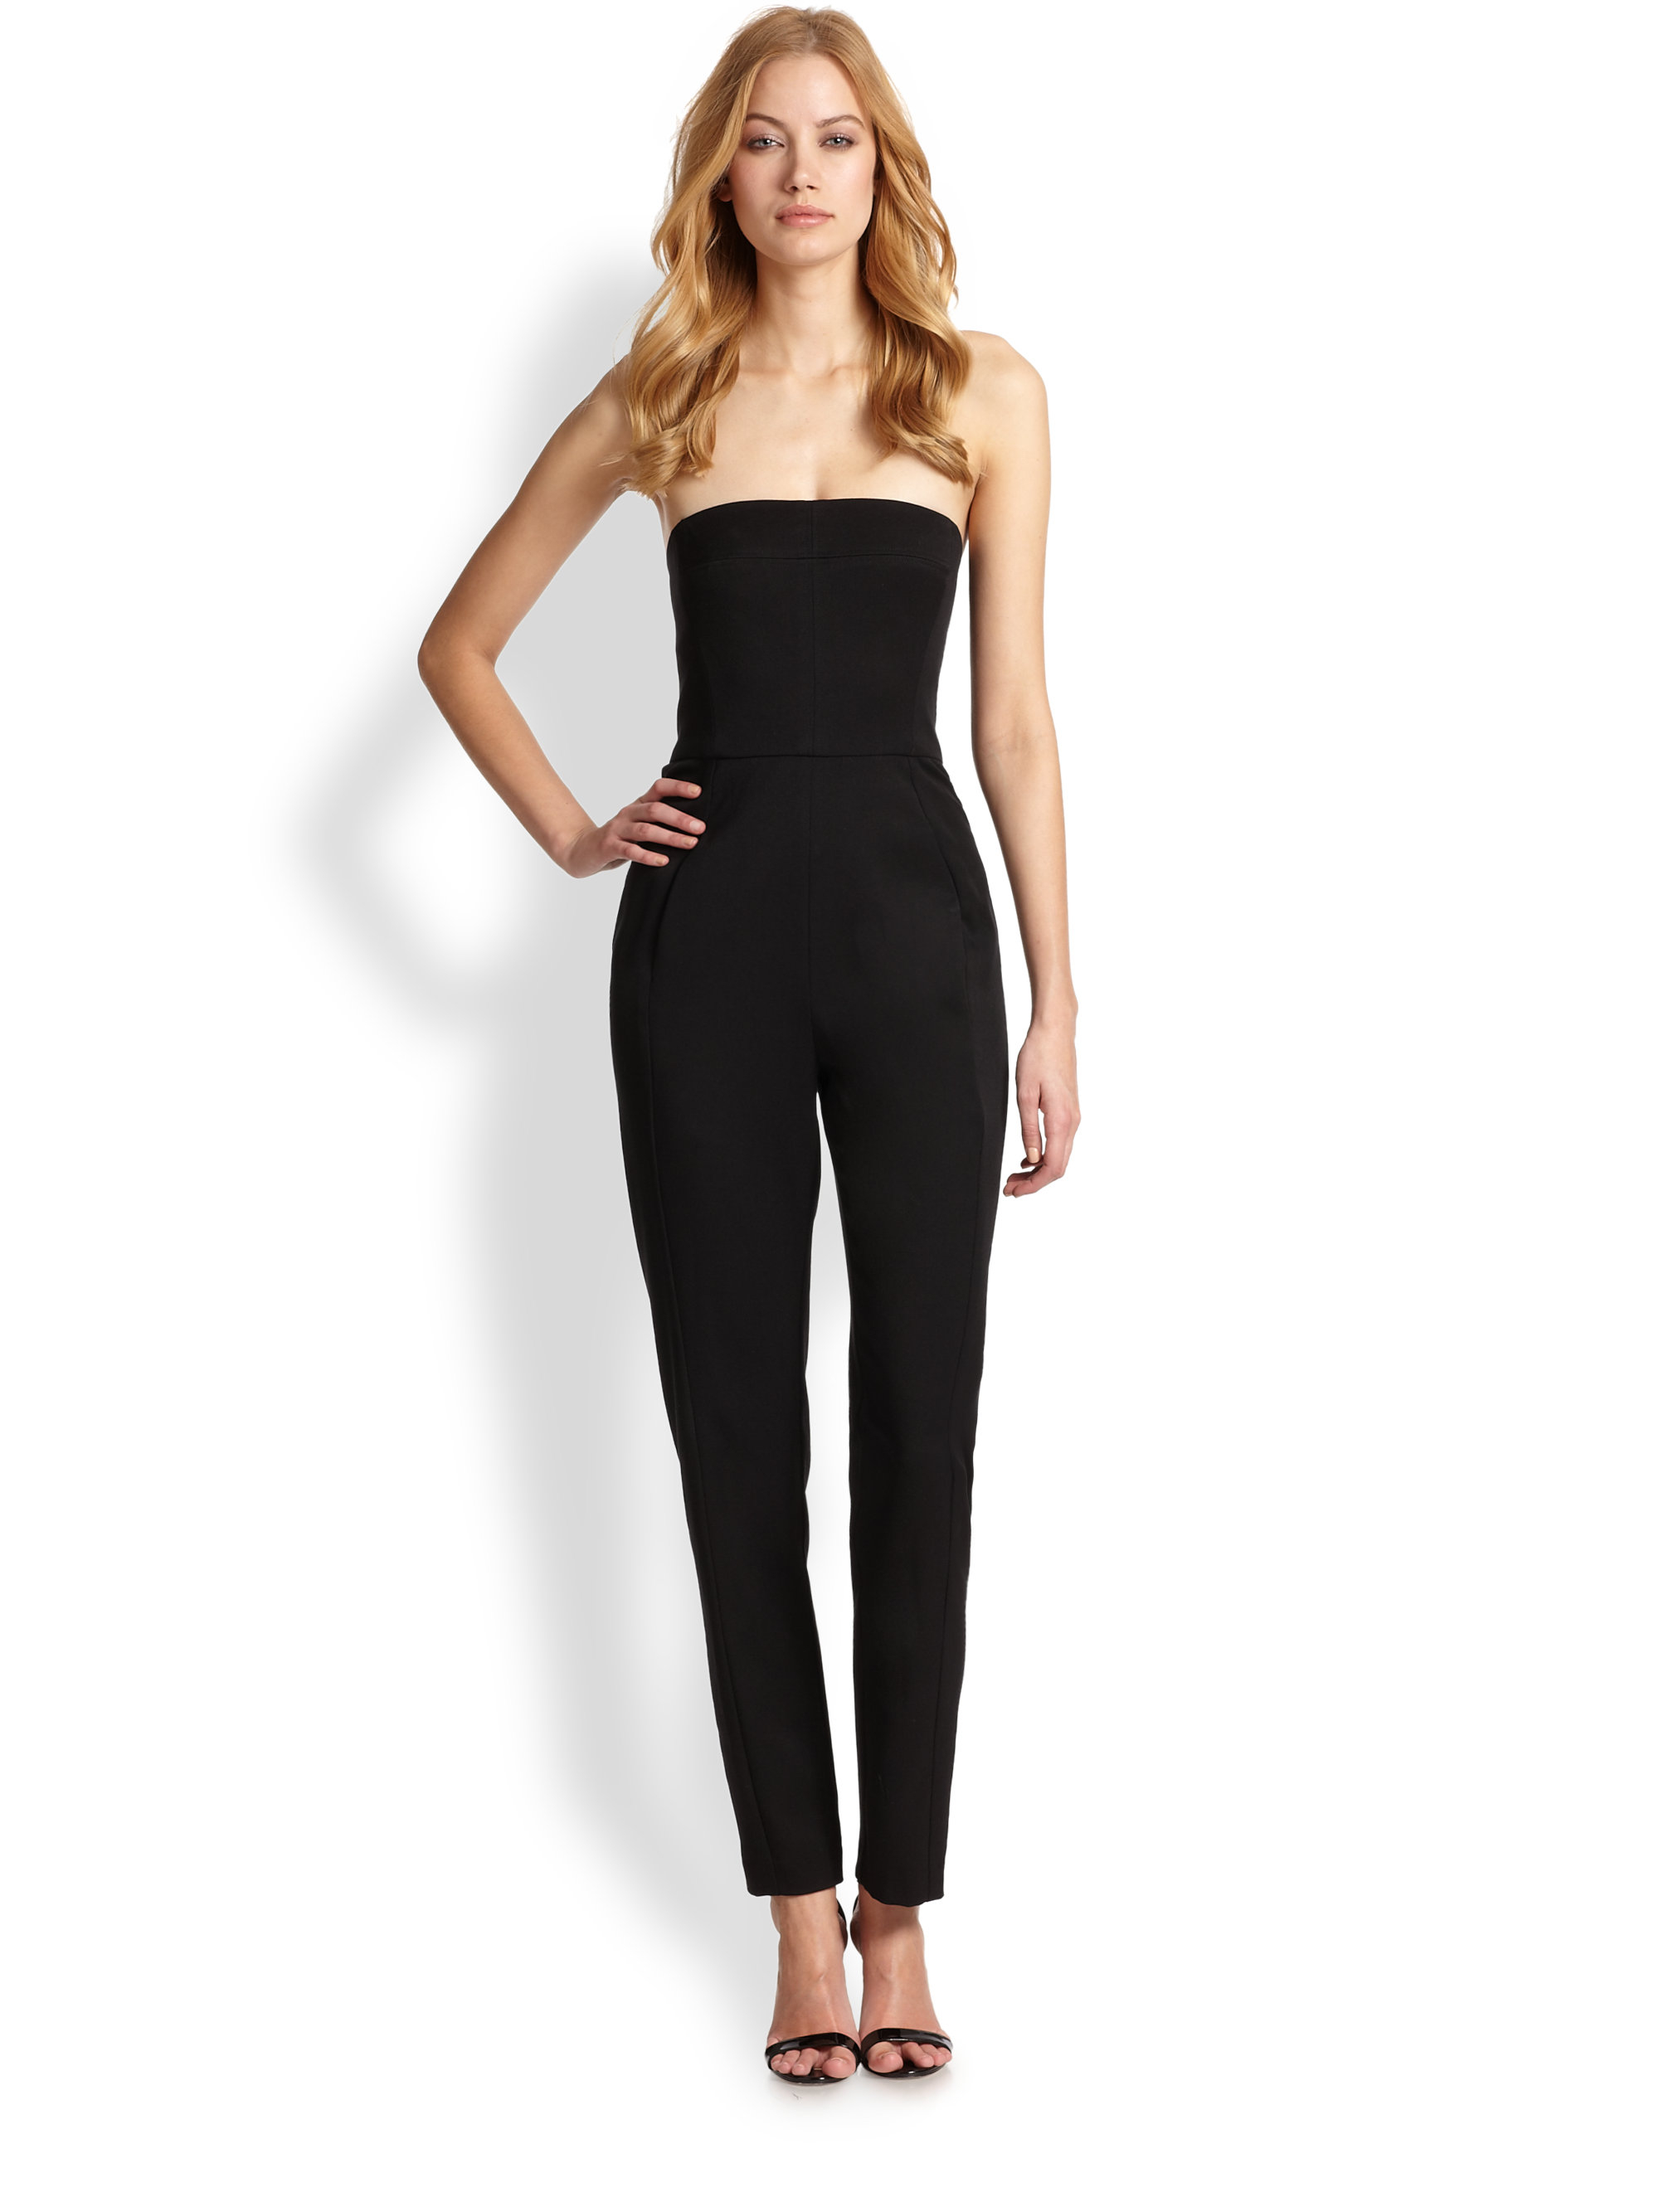 Lyst - Black Halo Iris Strapless Jumpsuit in Black